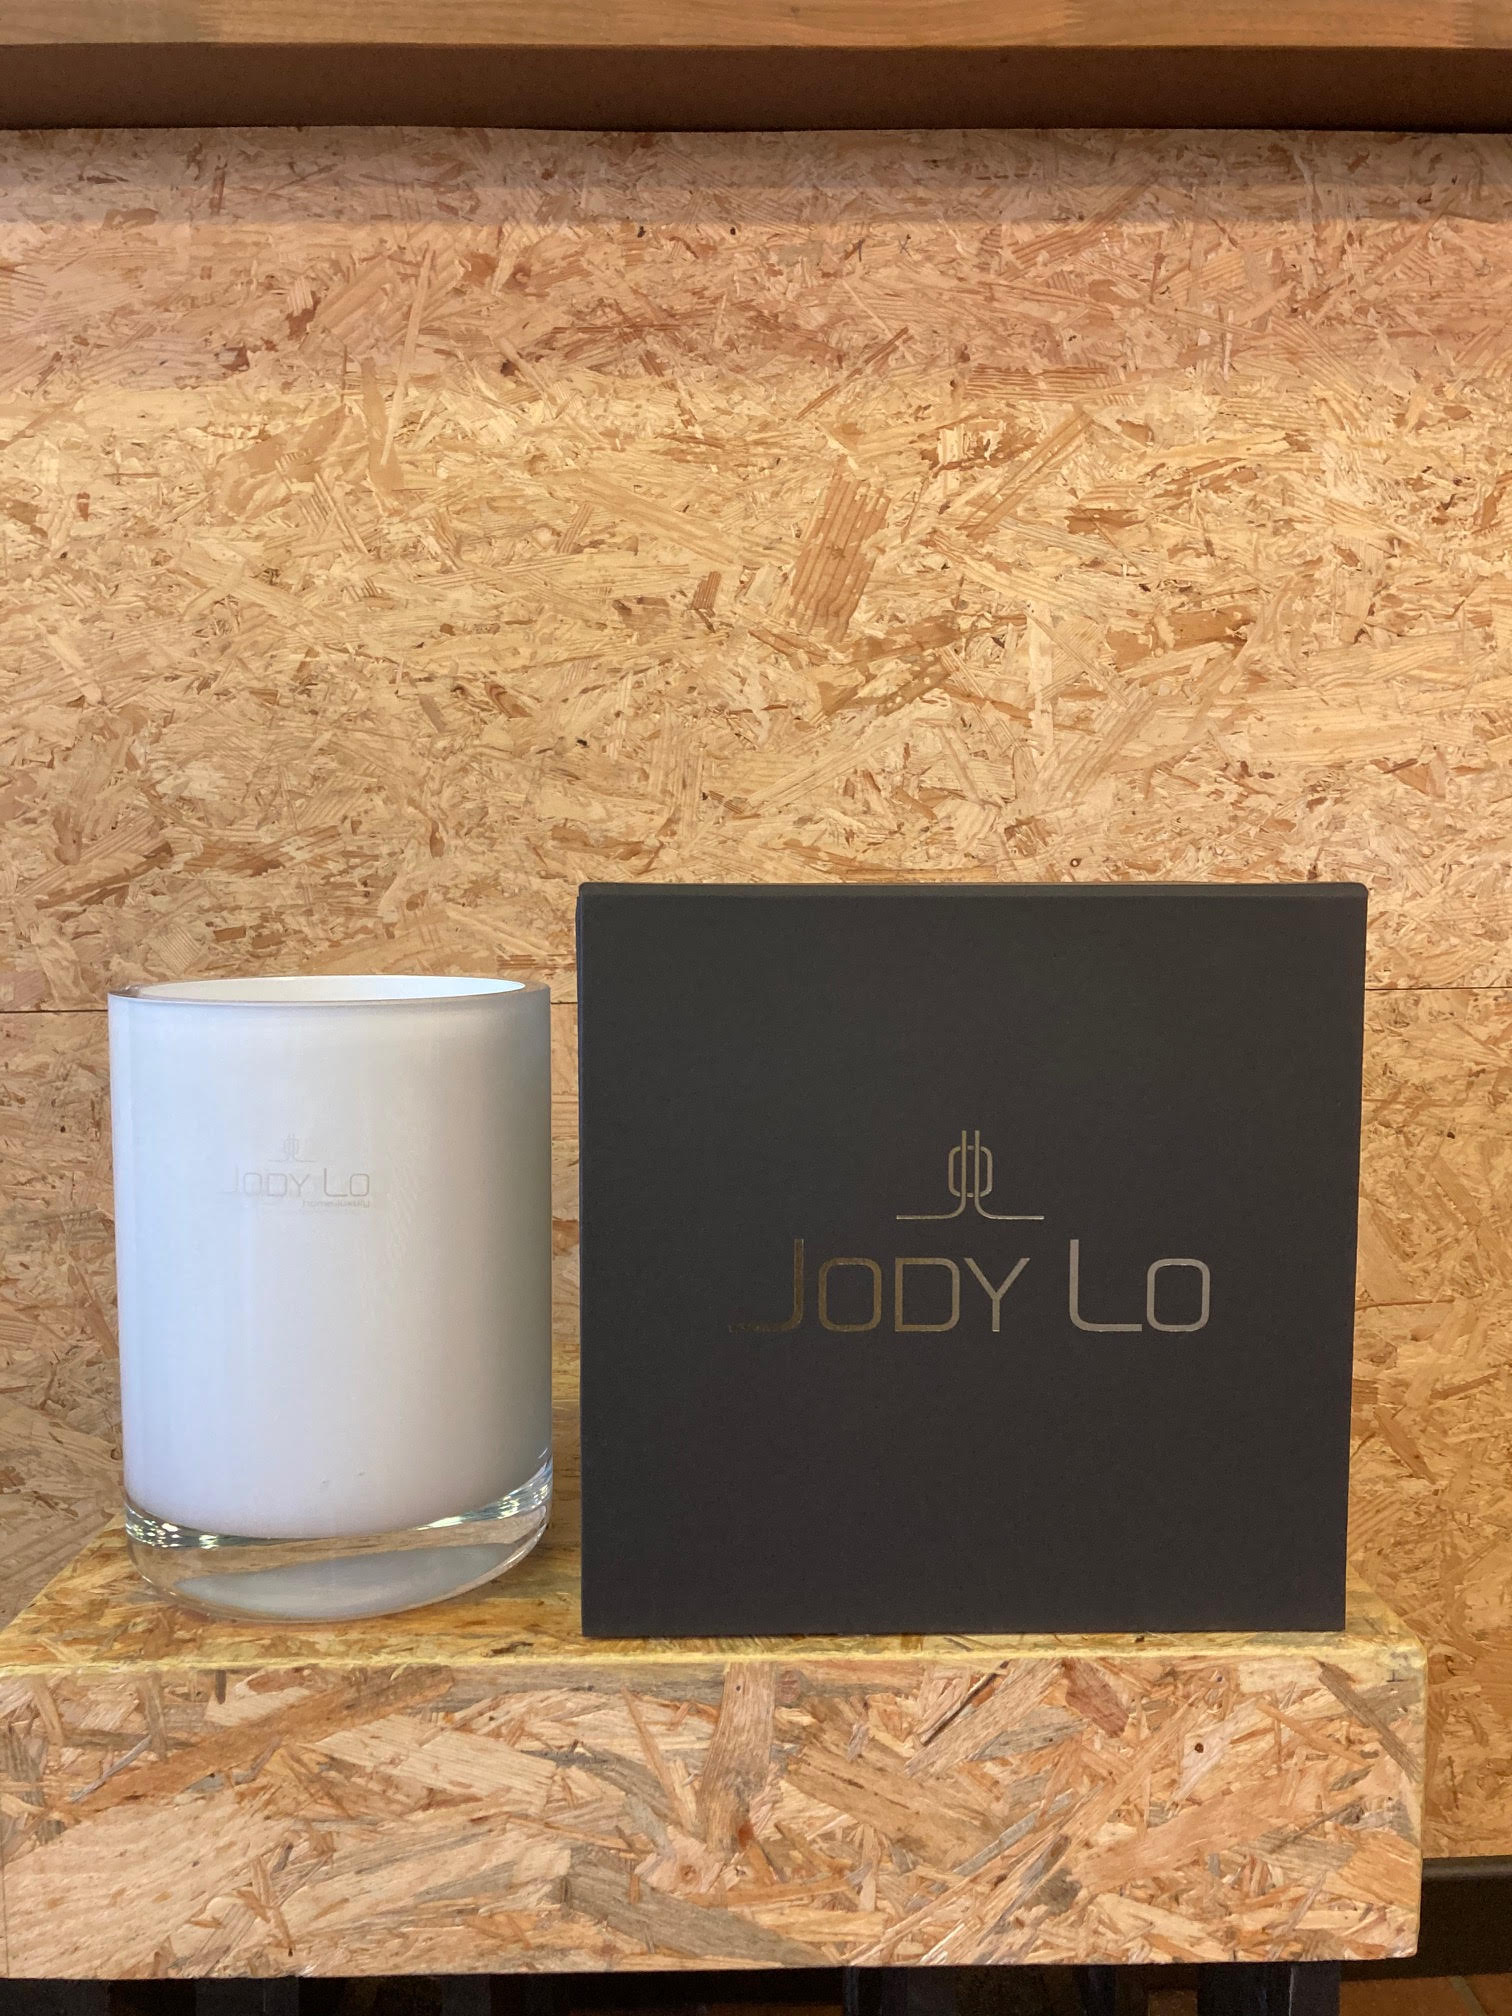 Luxurious cardboard candle packaging for Jody LO